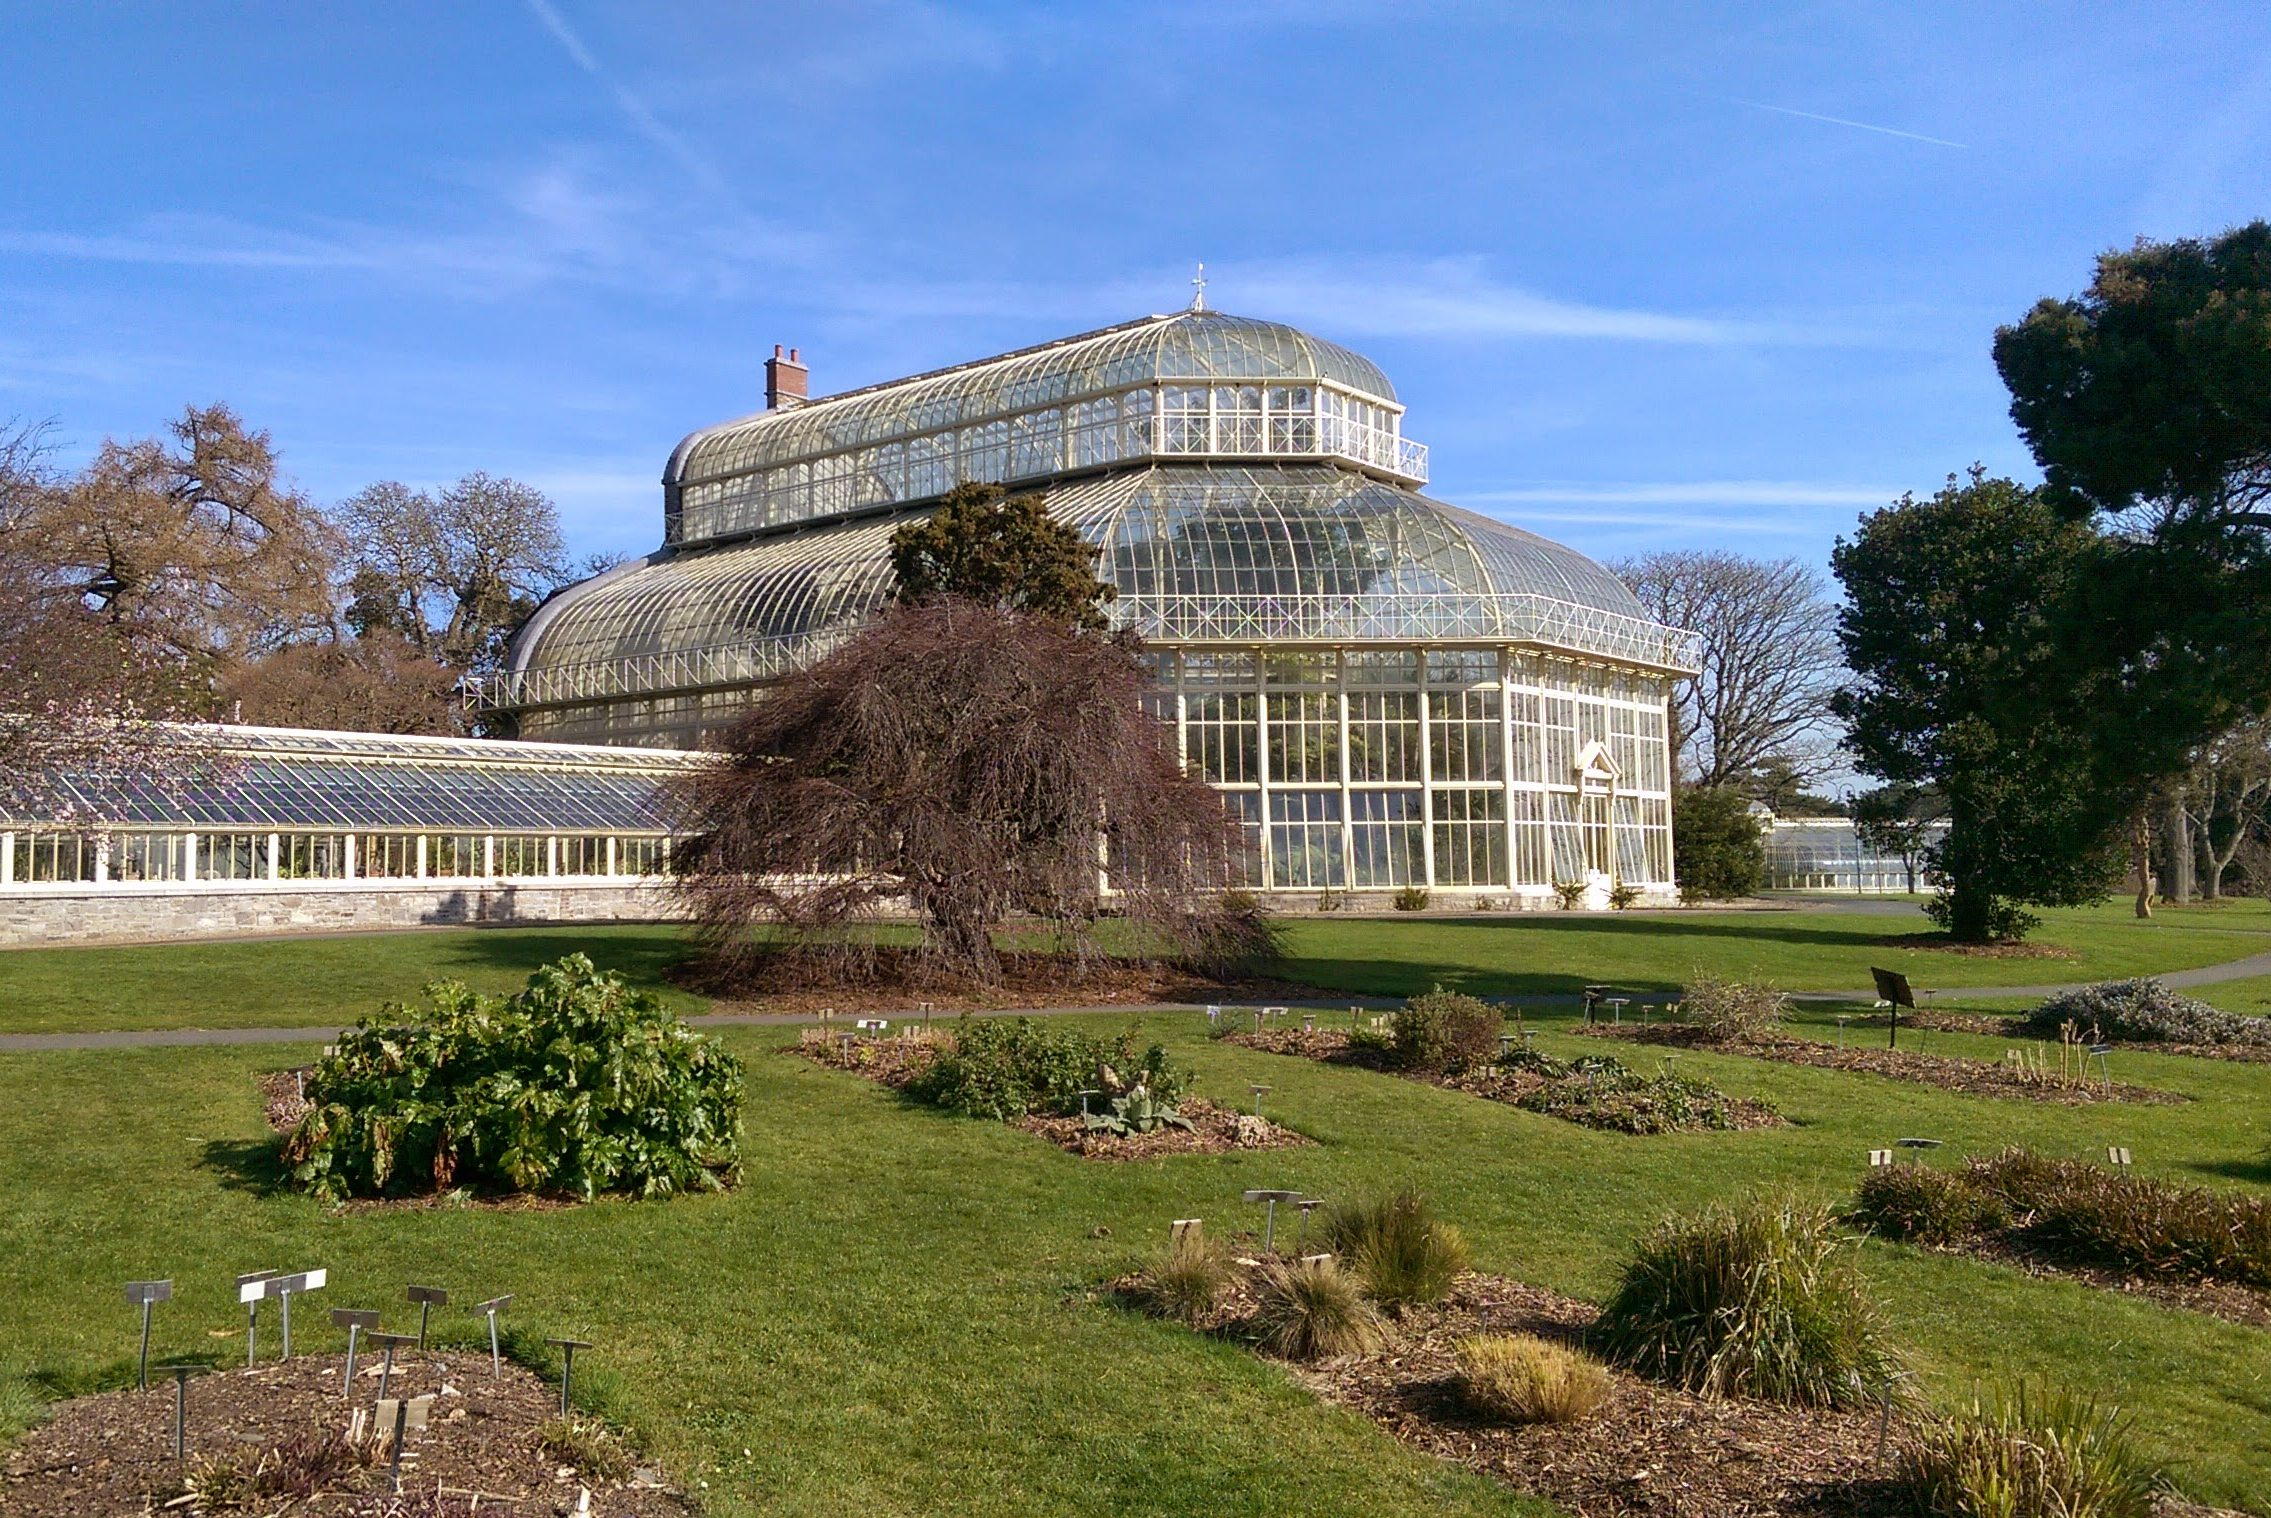 Explore The National Botanical Gardens